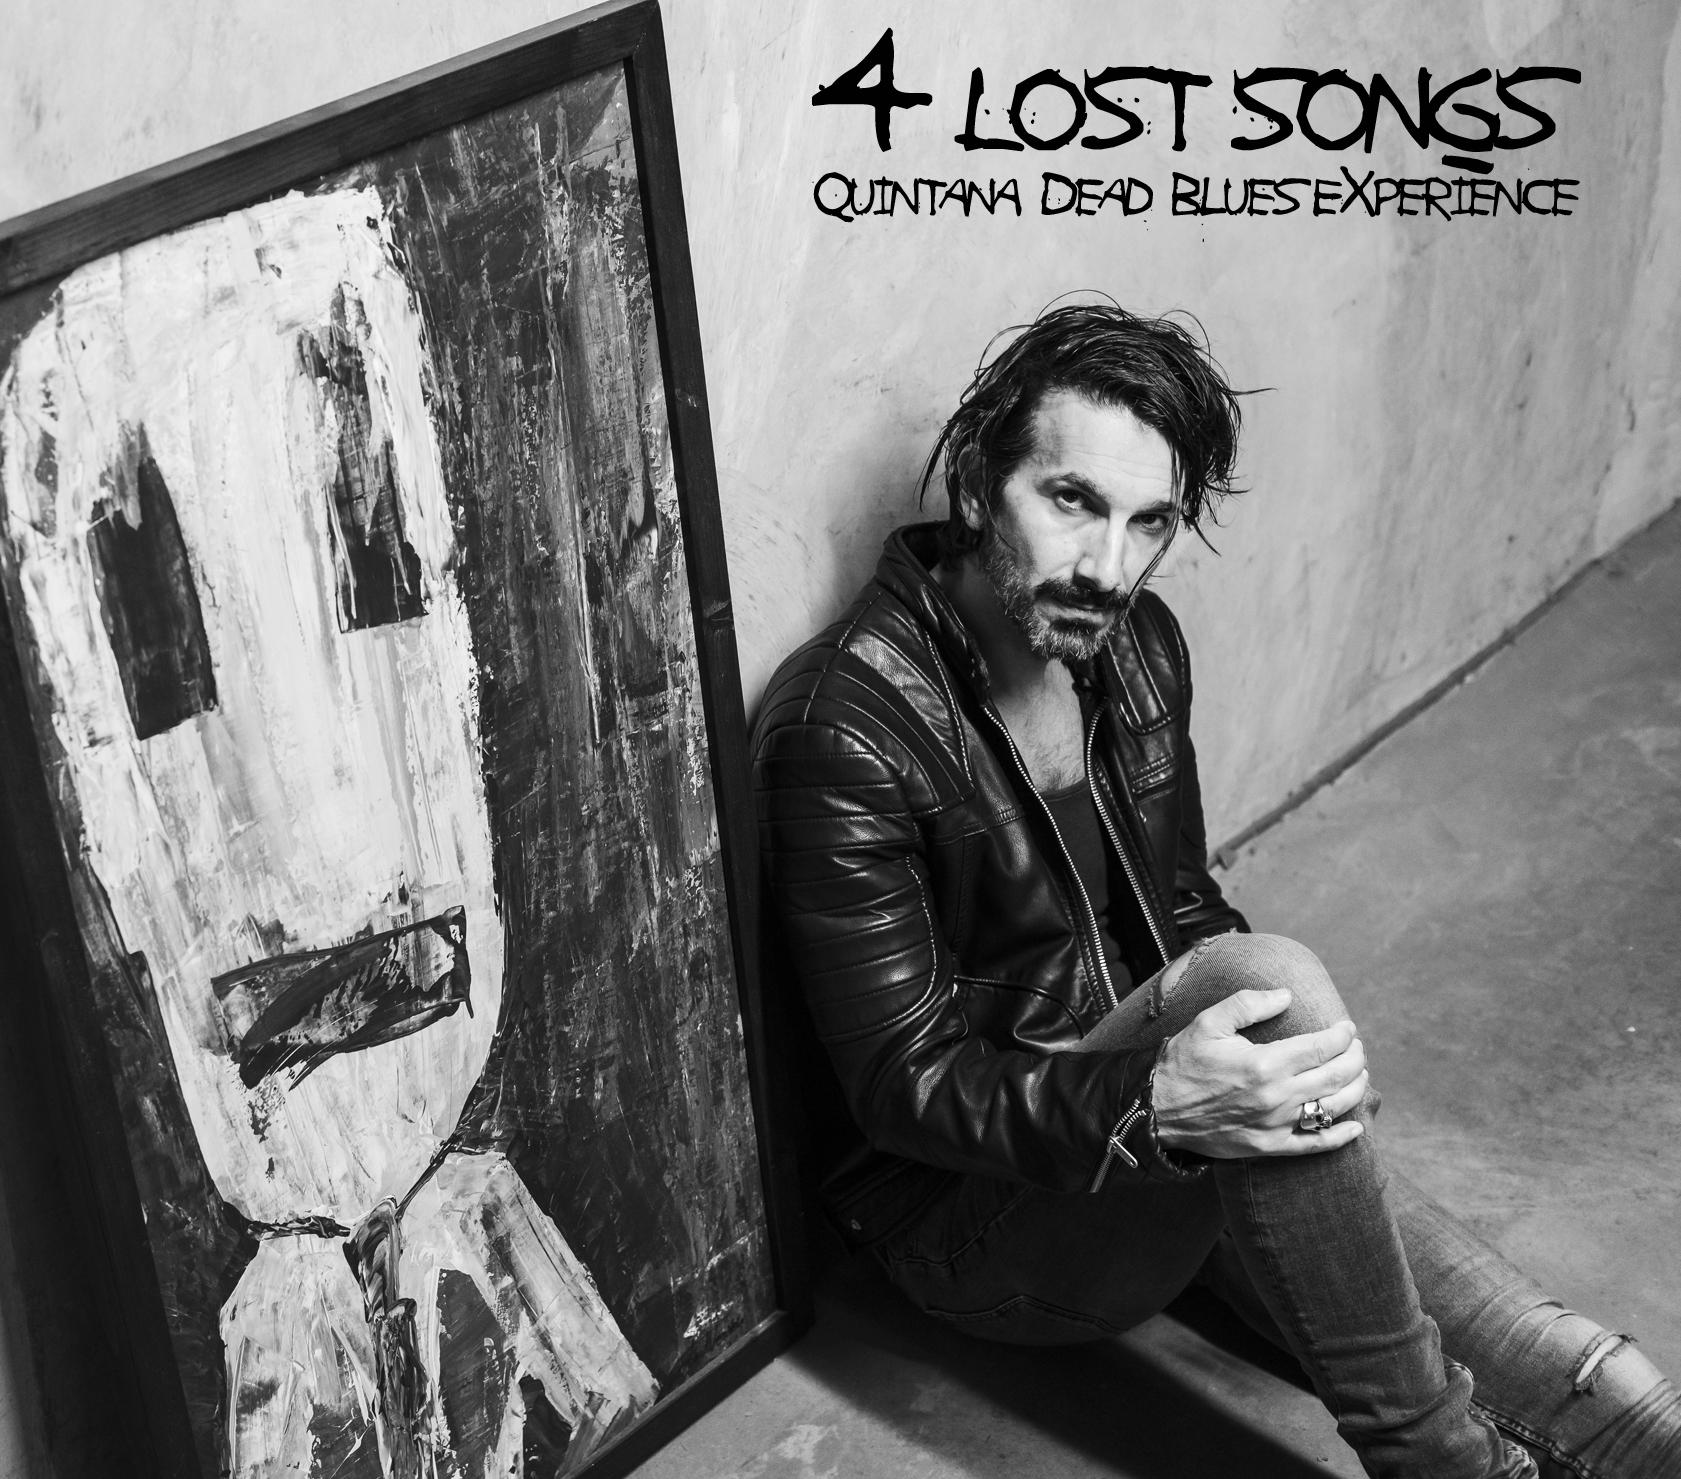 Quintana Dead Blues eXperience, « 4 Lost Songs » (EP - 2020)